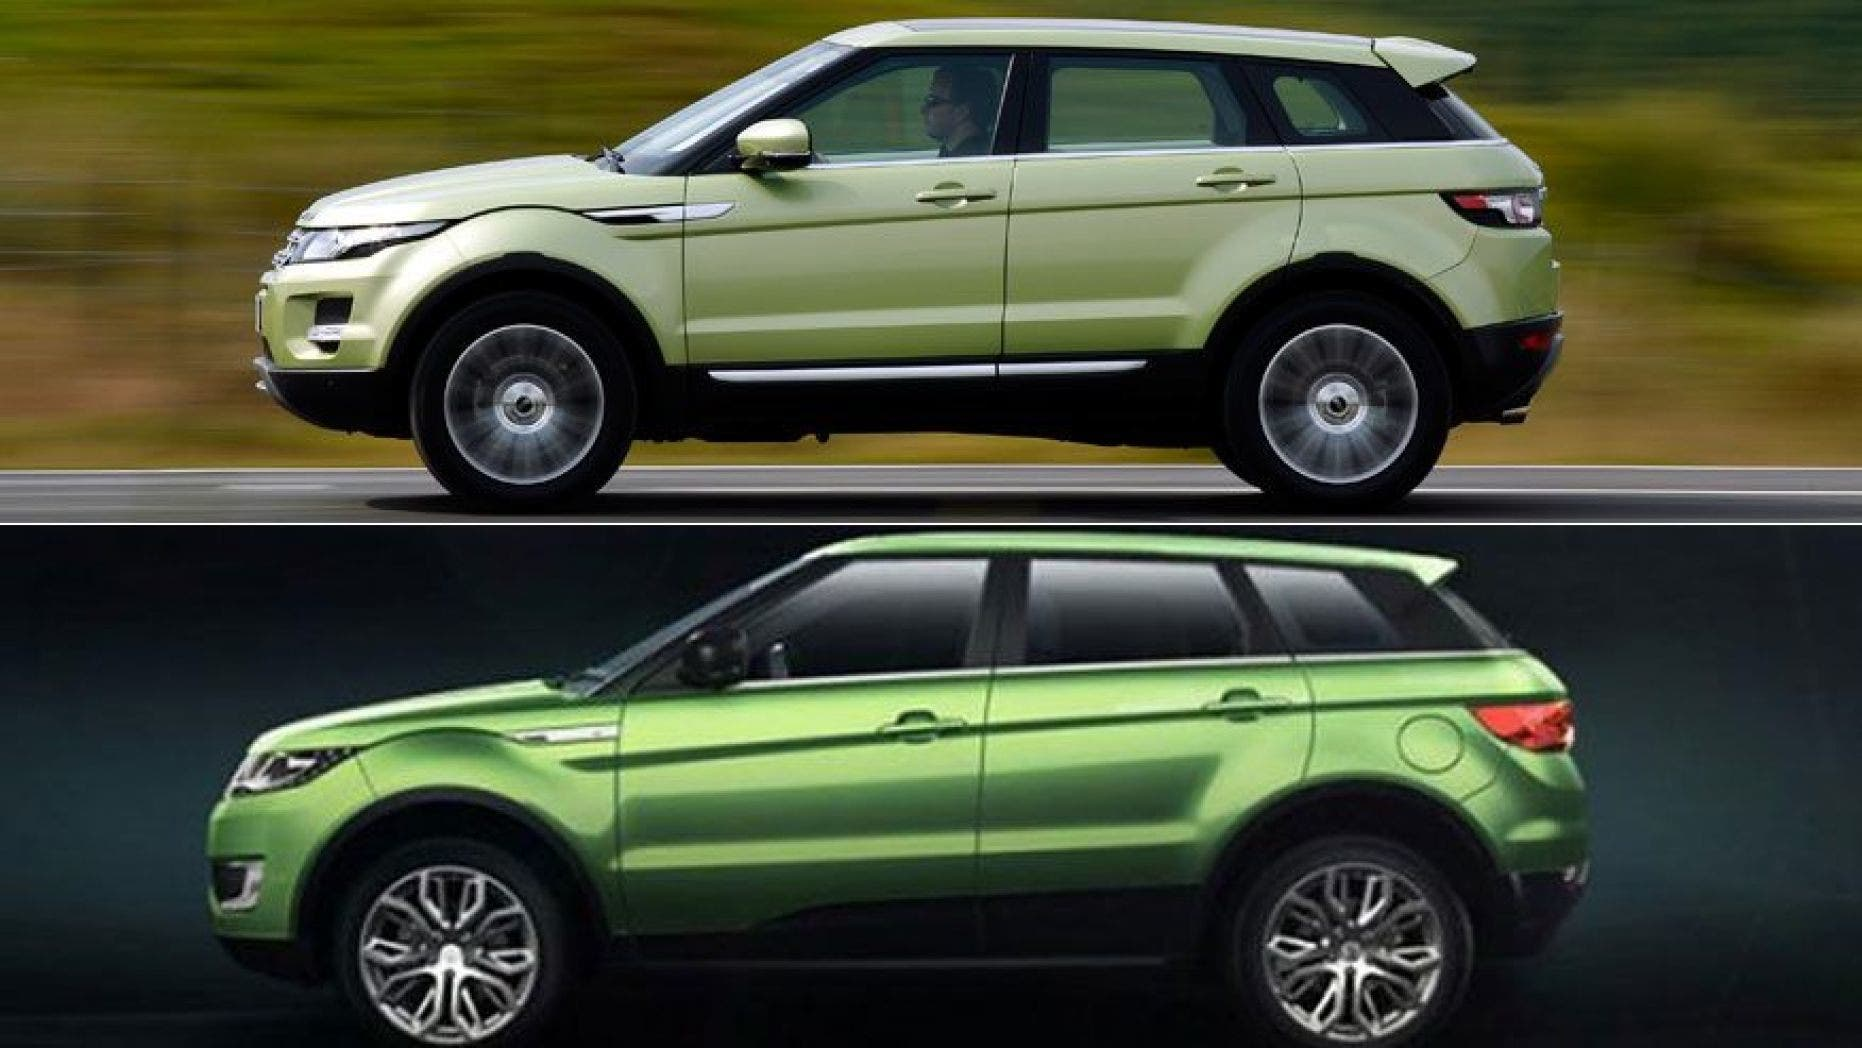 The justice dynamic that a Landwind X7 (bottom) copied 5 singular elements from a Range Rover Evoque (top).